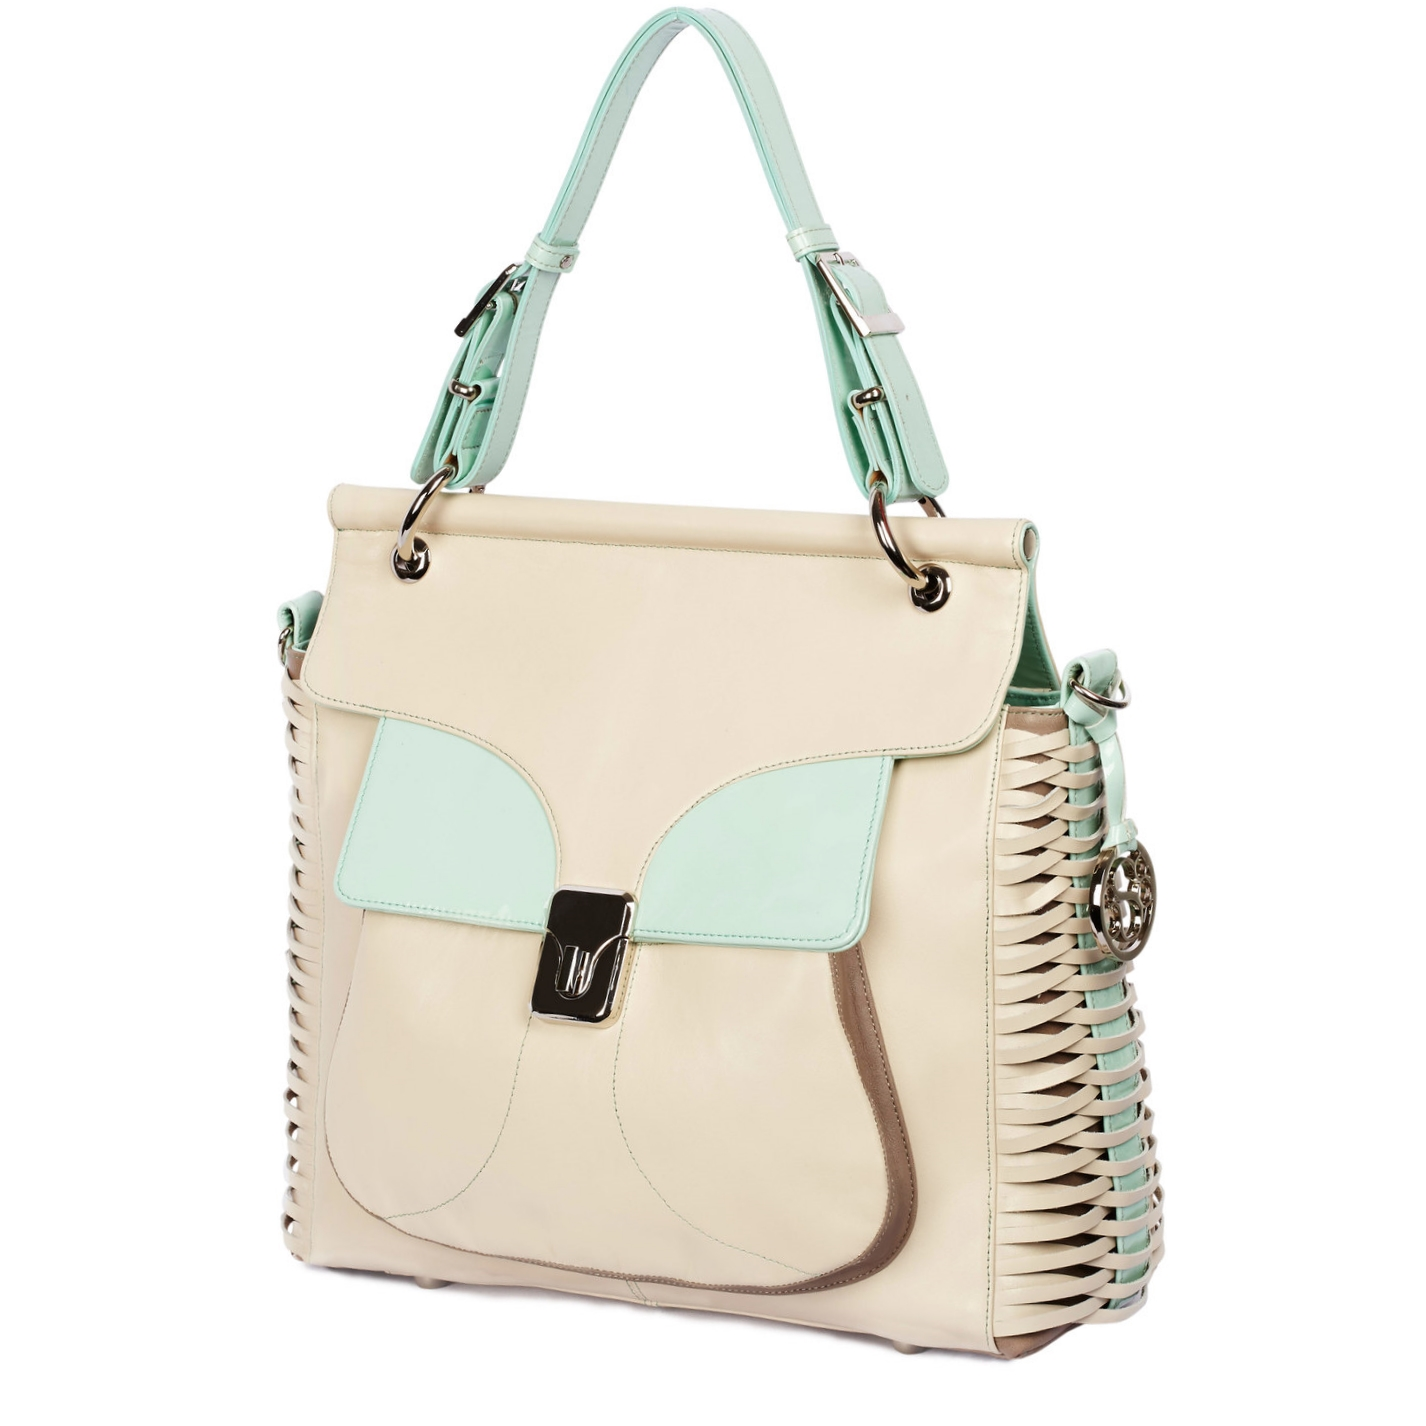 Luxe Beige | Soft Brown +Dazzling Mint - $795.00